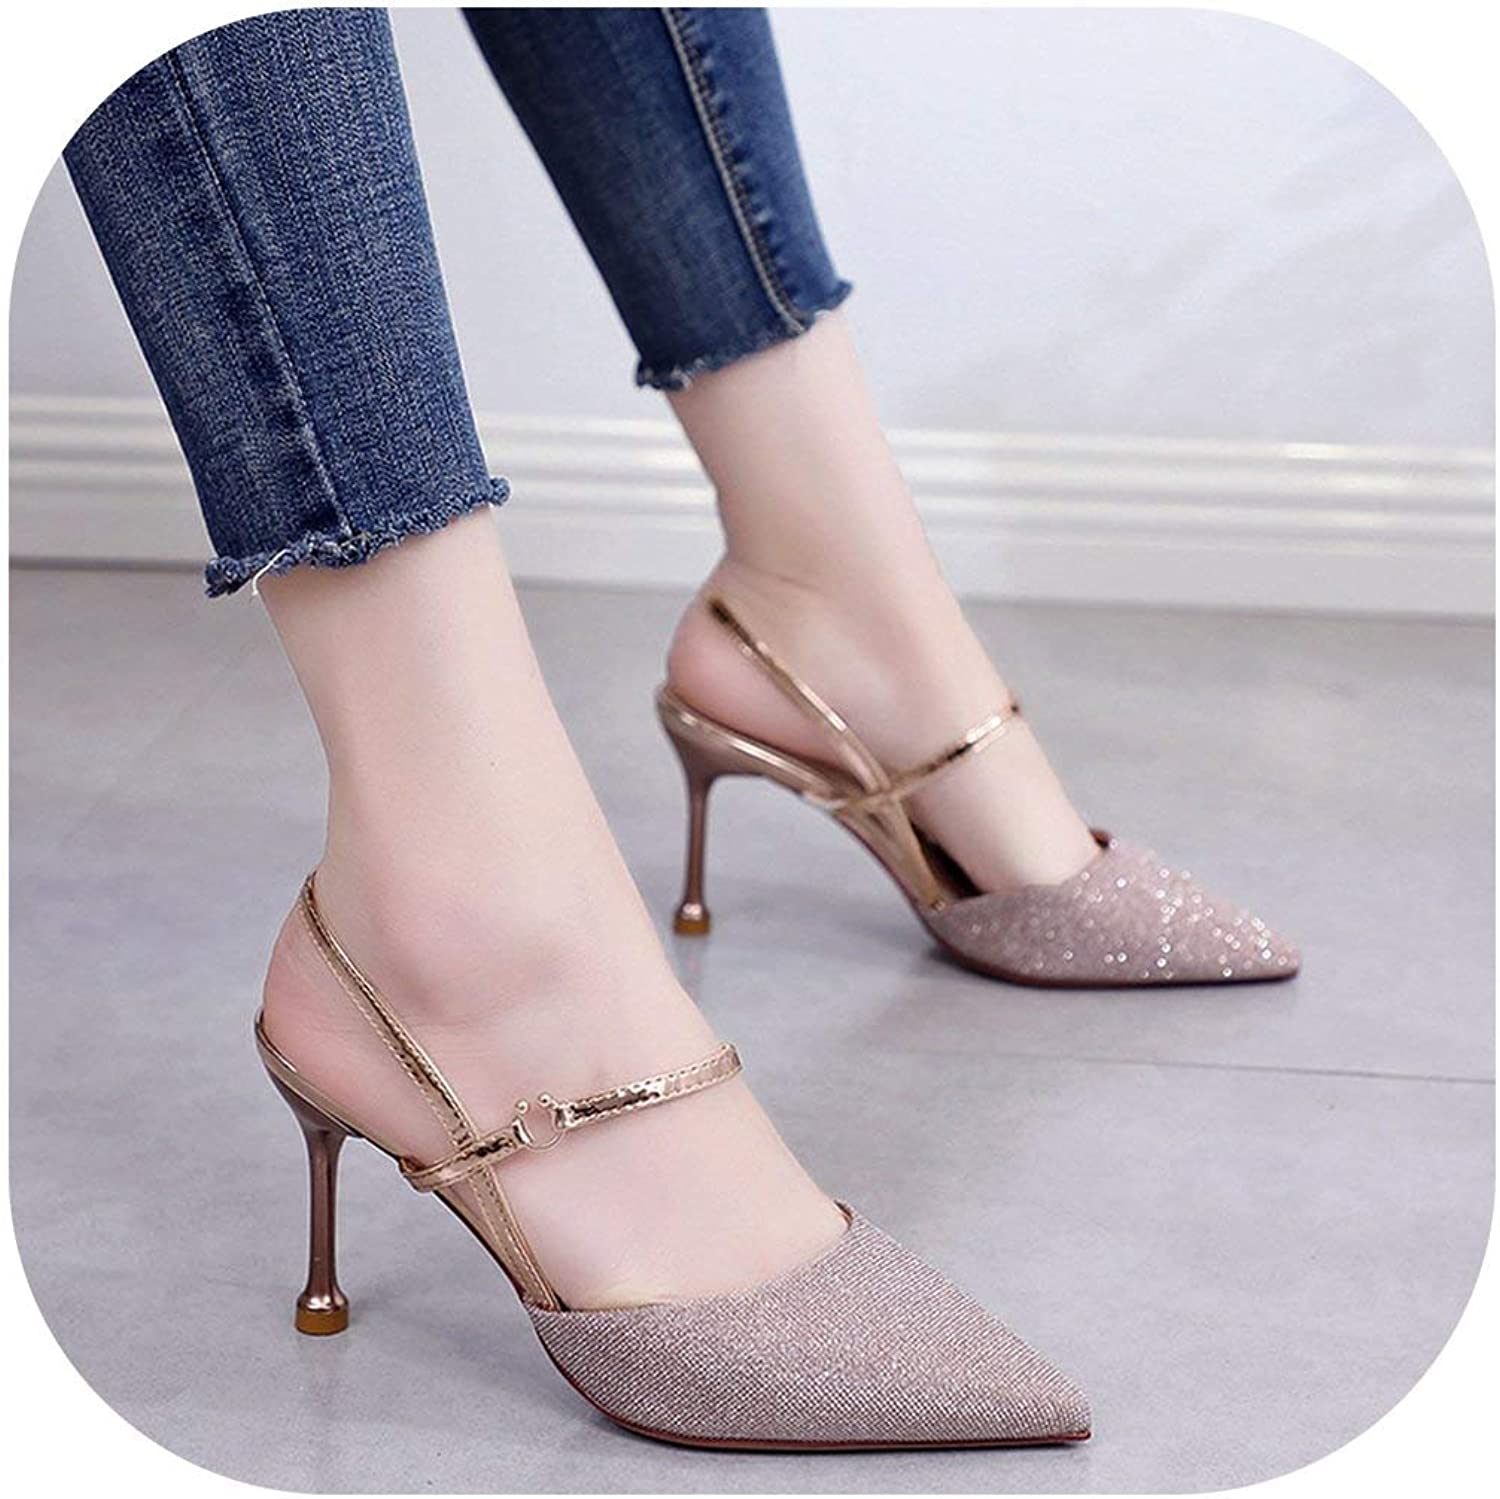 Flat Sandals Stiletto Sandals Female Sequins Cloth Pointed High Heels Women's shoes